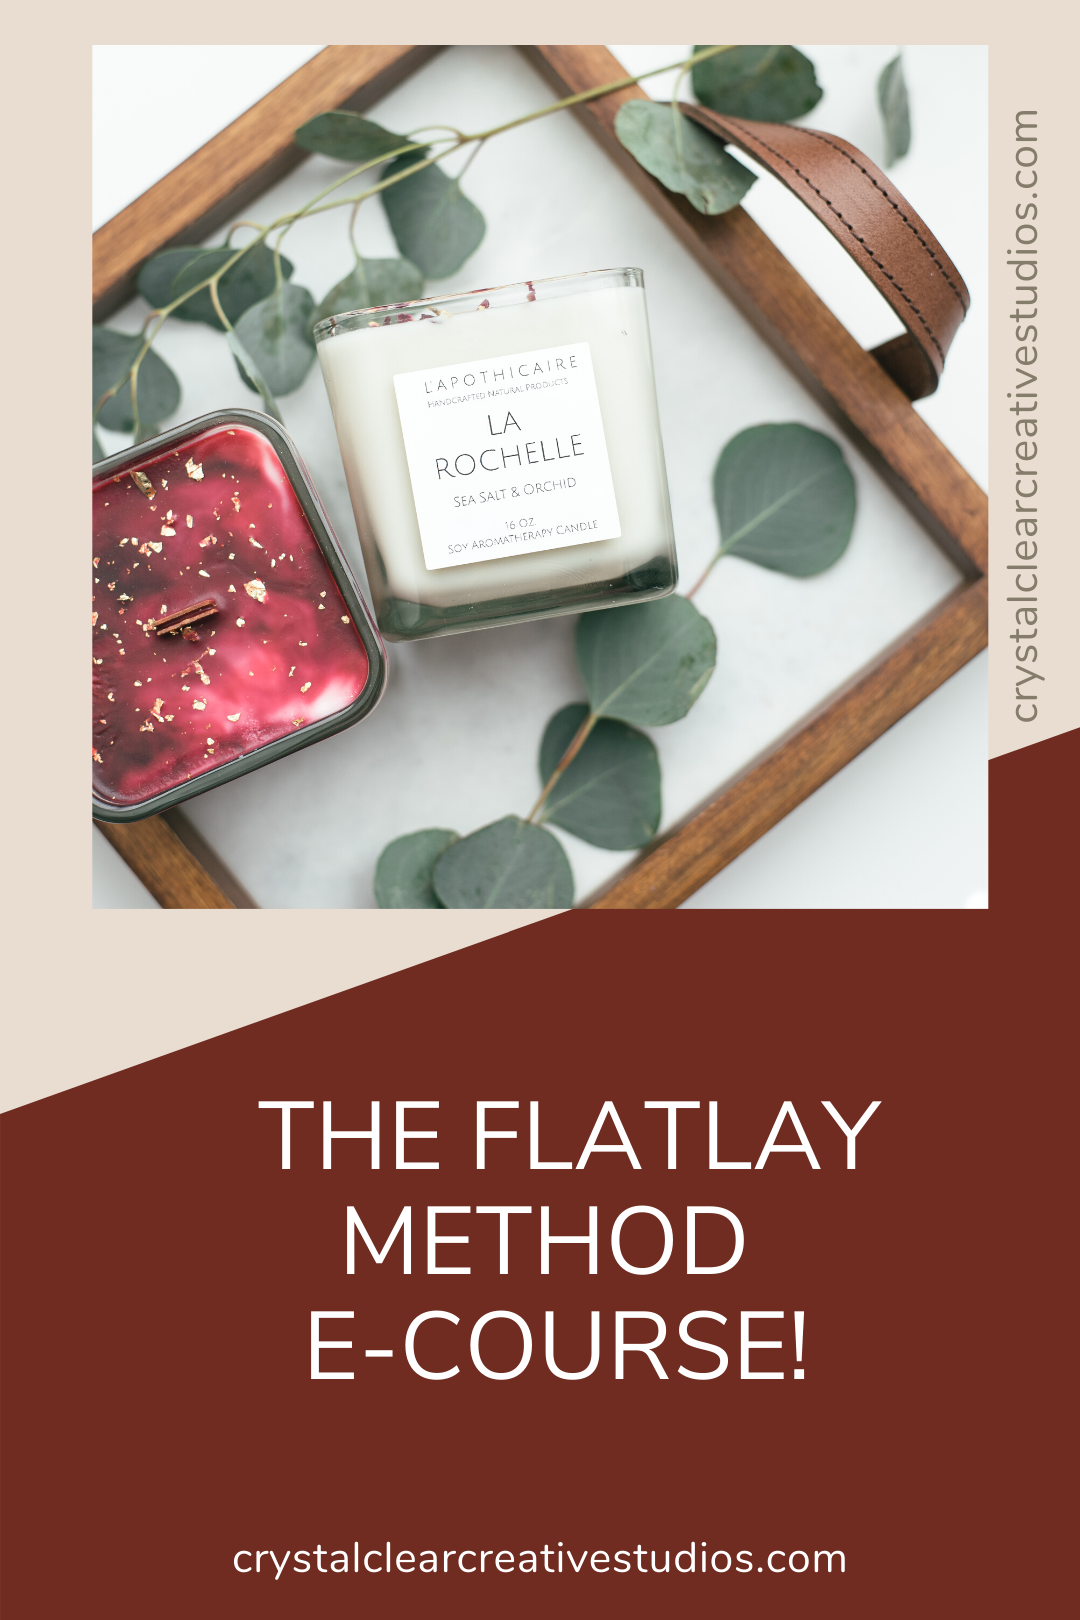 The Flatlay Method E-Course